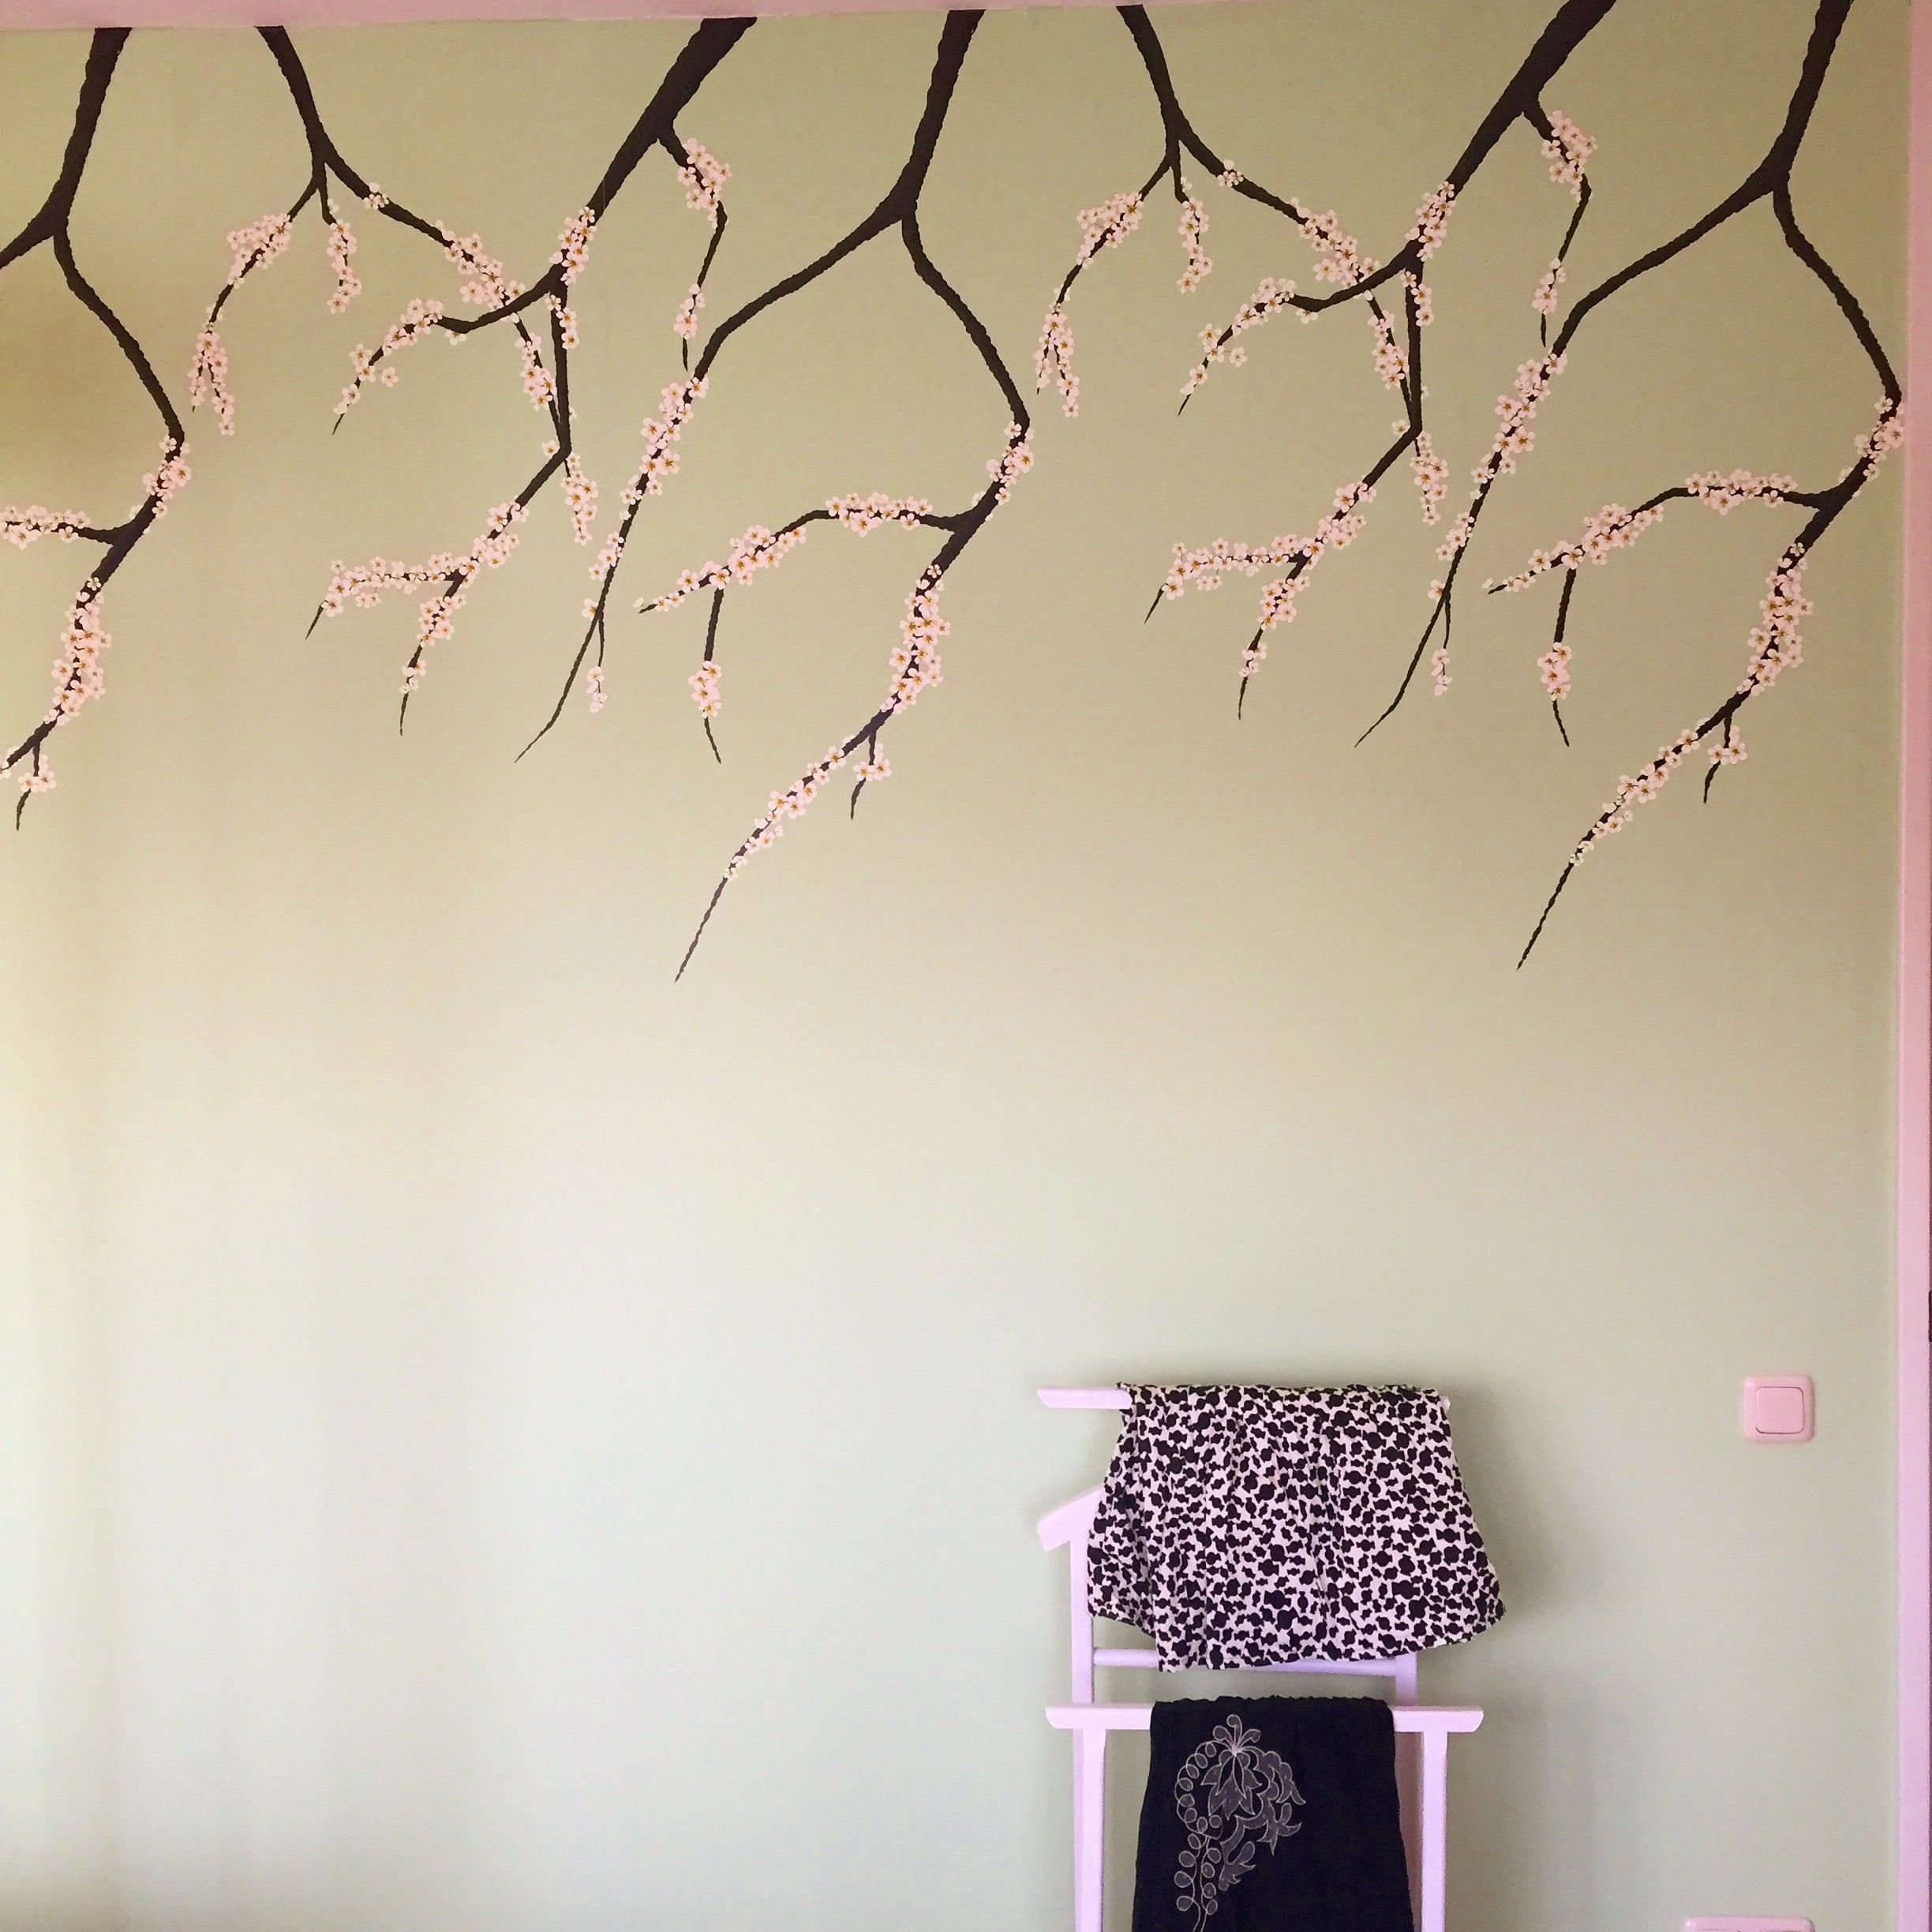 Cherry blossom wallpaper. Available through email Www